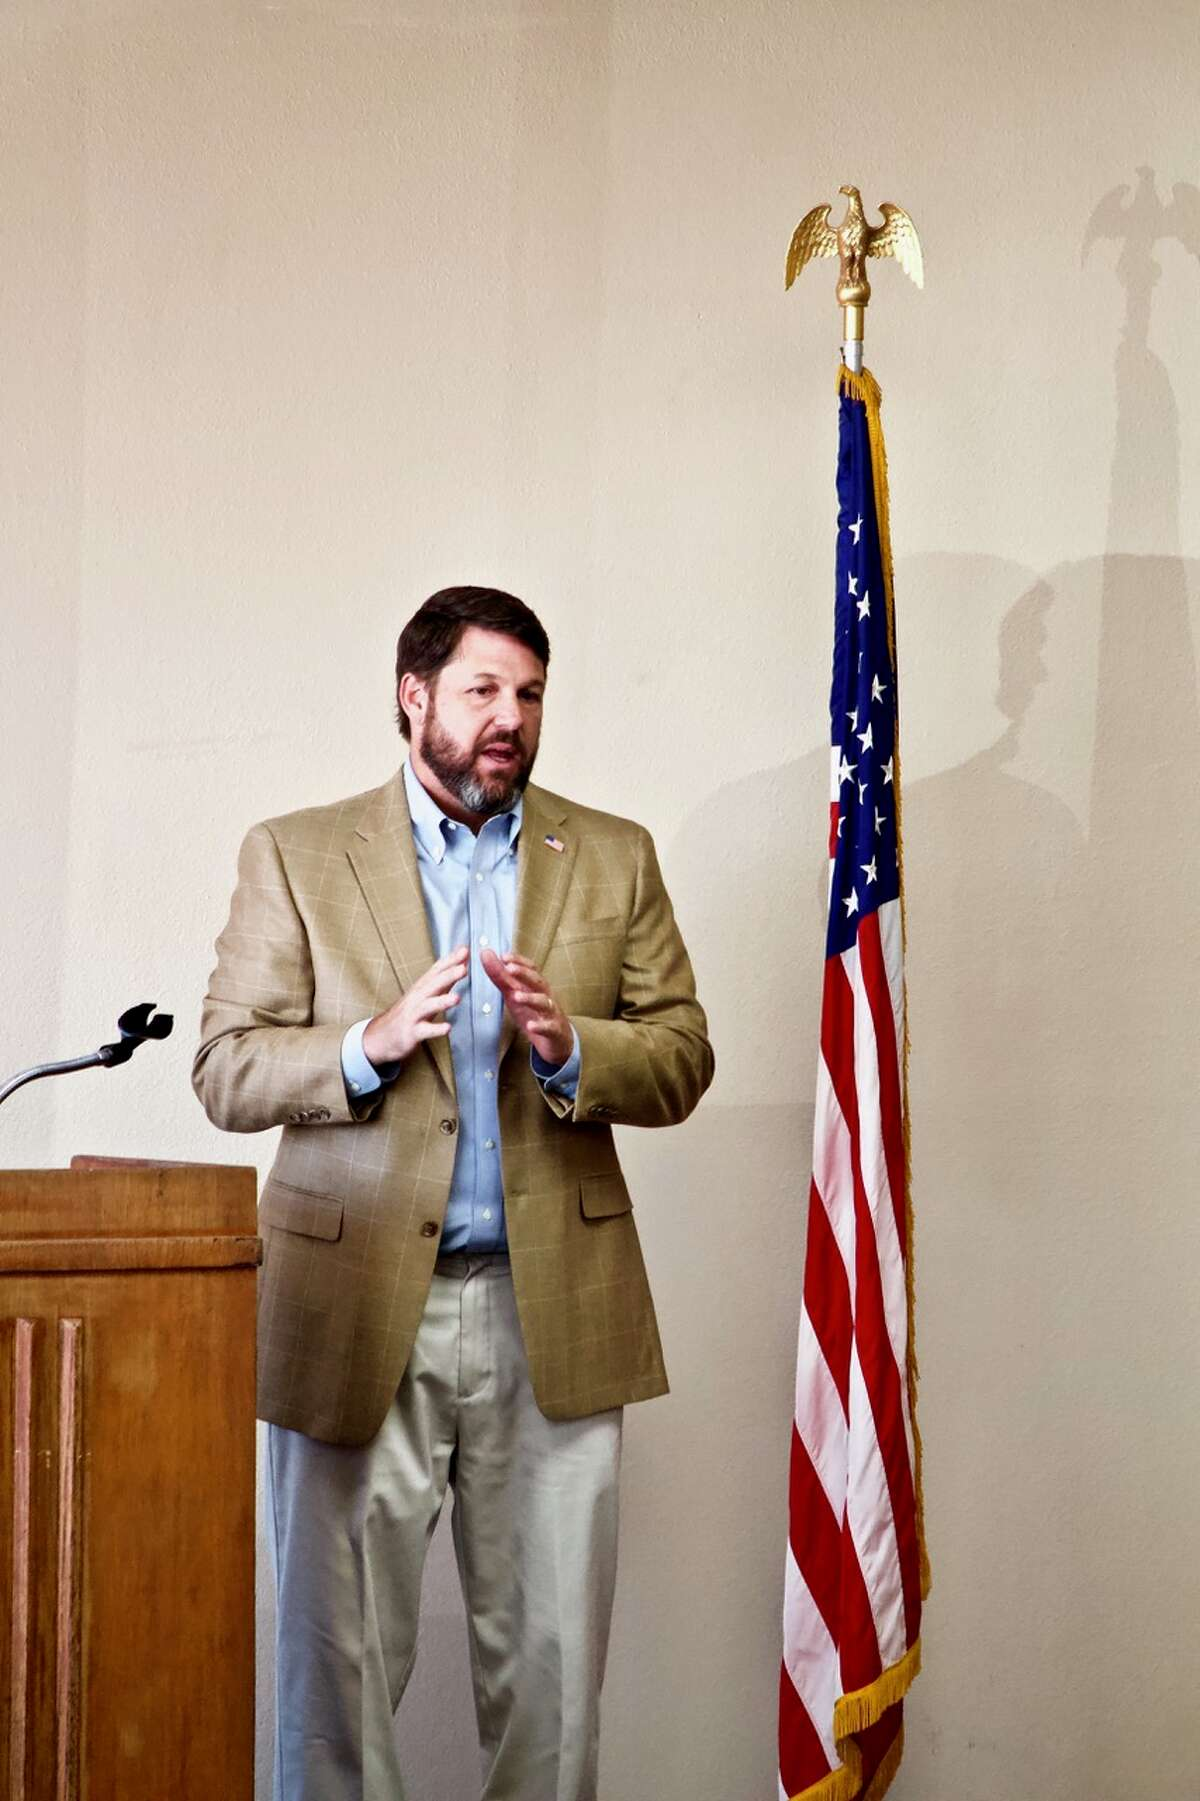 Congressman Jodey Arrington (R-19) spent some time Thursday chatting with constituents in Hale Center. About 40 people gathered at the LeMond Community Center in Hale Center to hear him speak about activity in Washington and to chat with him in person.